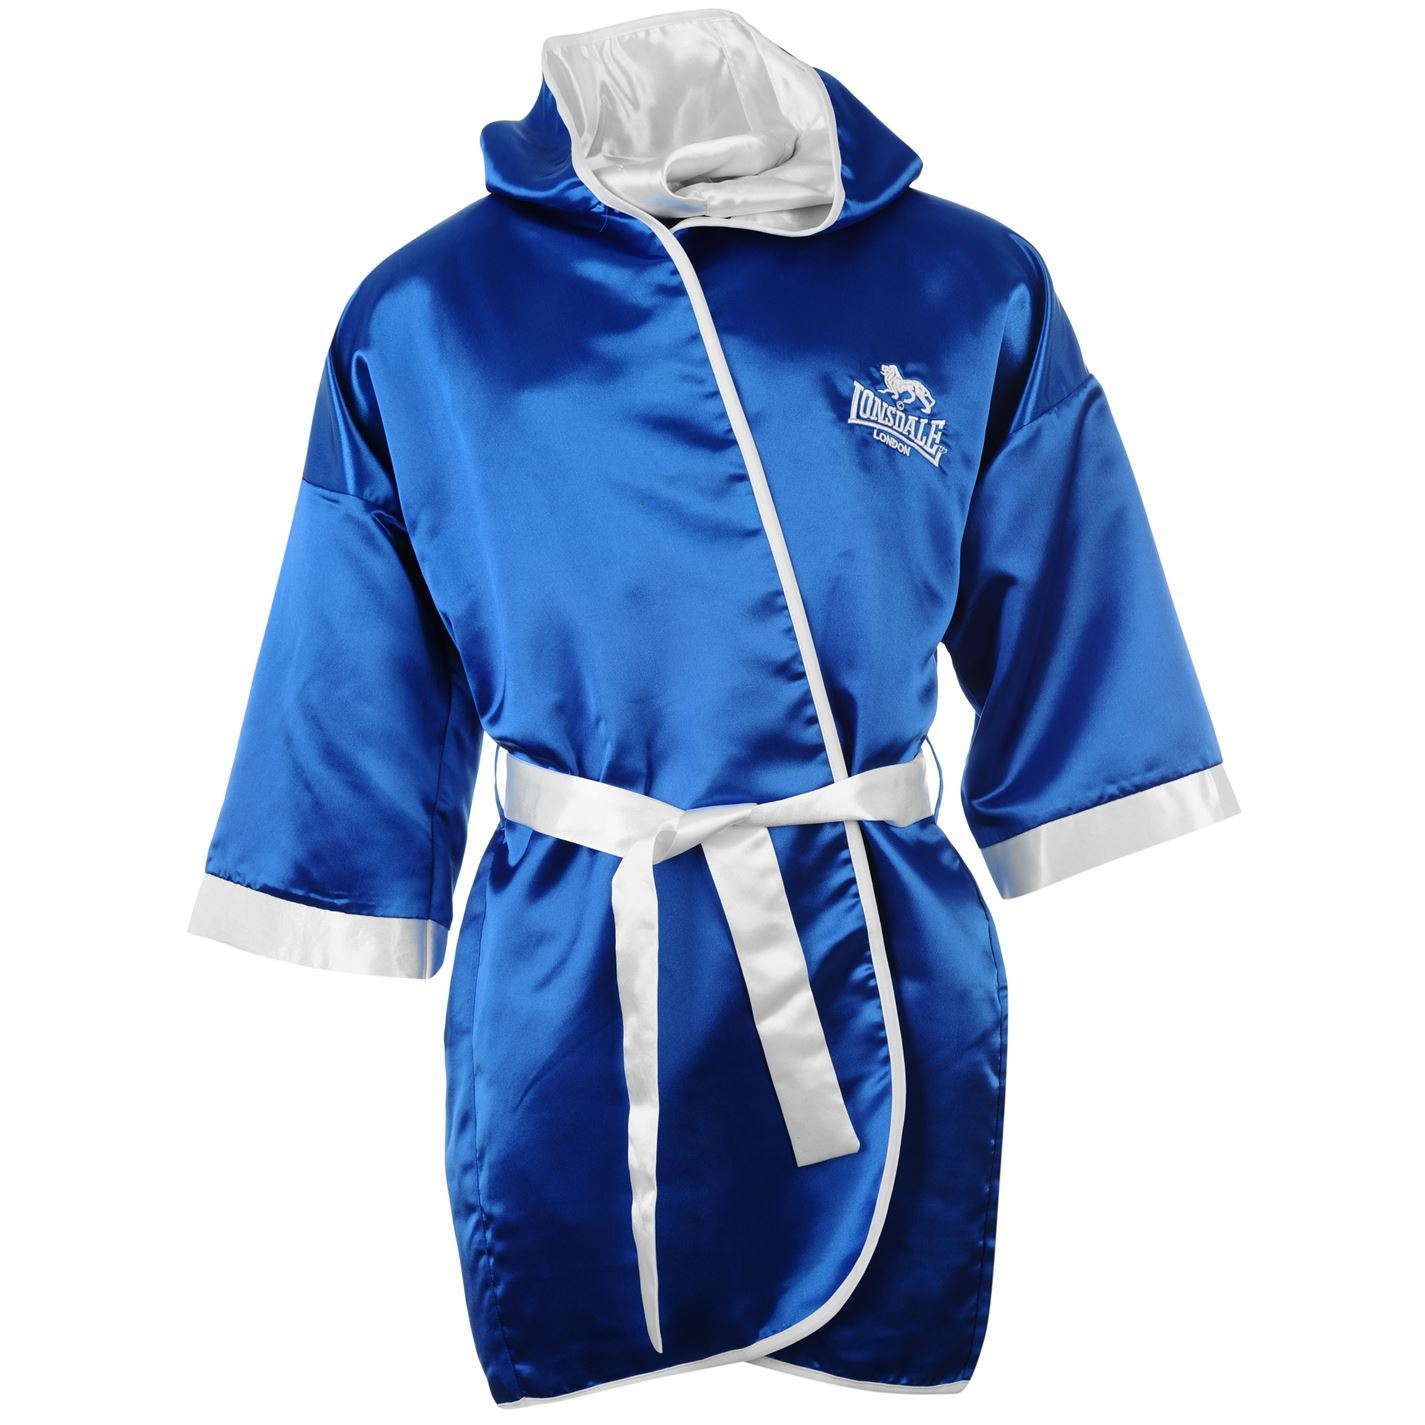 lonsdale mens boxing gown hooded dressing robe bathrobe ebay. Black Bedroom Furniture Sets. Home Design Ideas